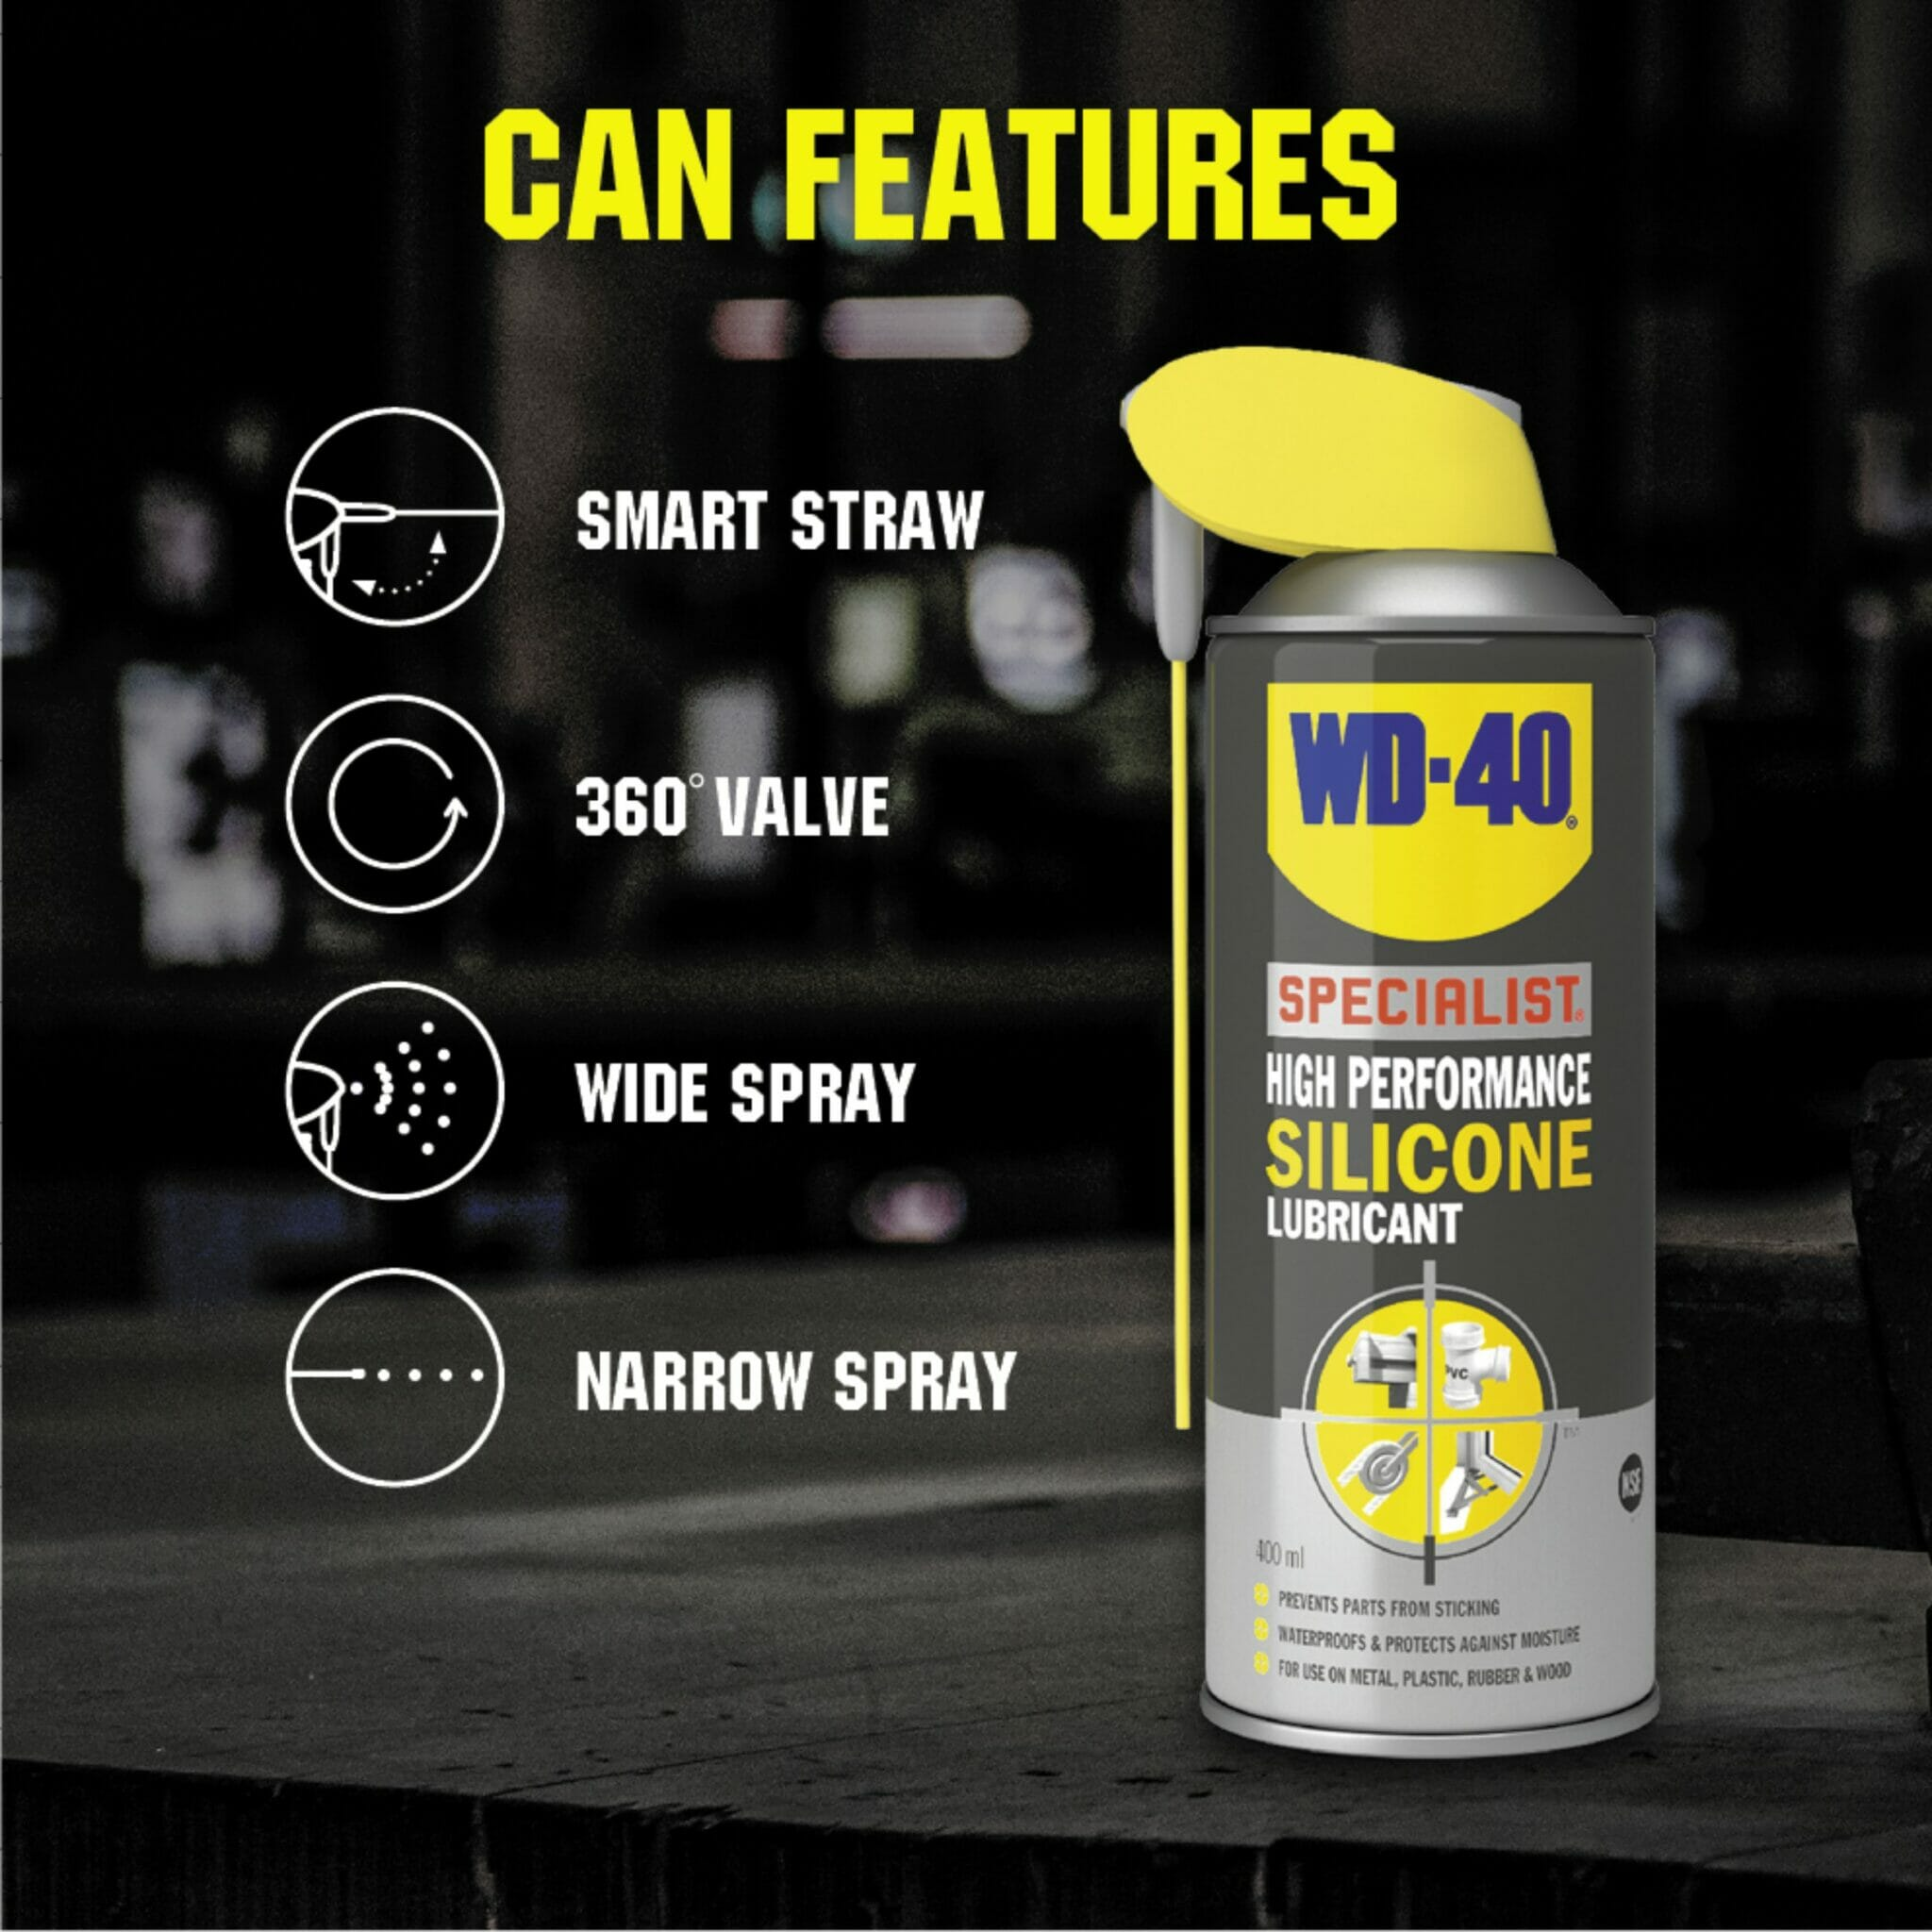 uk wd40 specialist high performance silicone lubricant 400ml can features lifestyle background